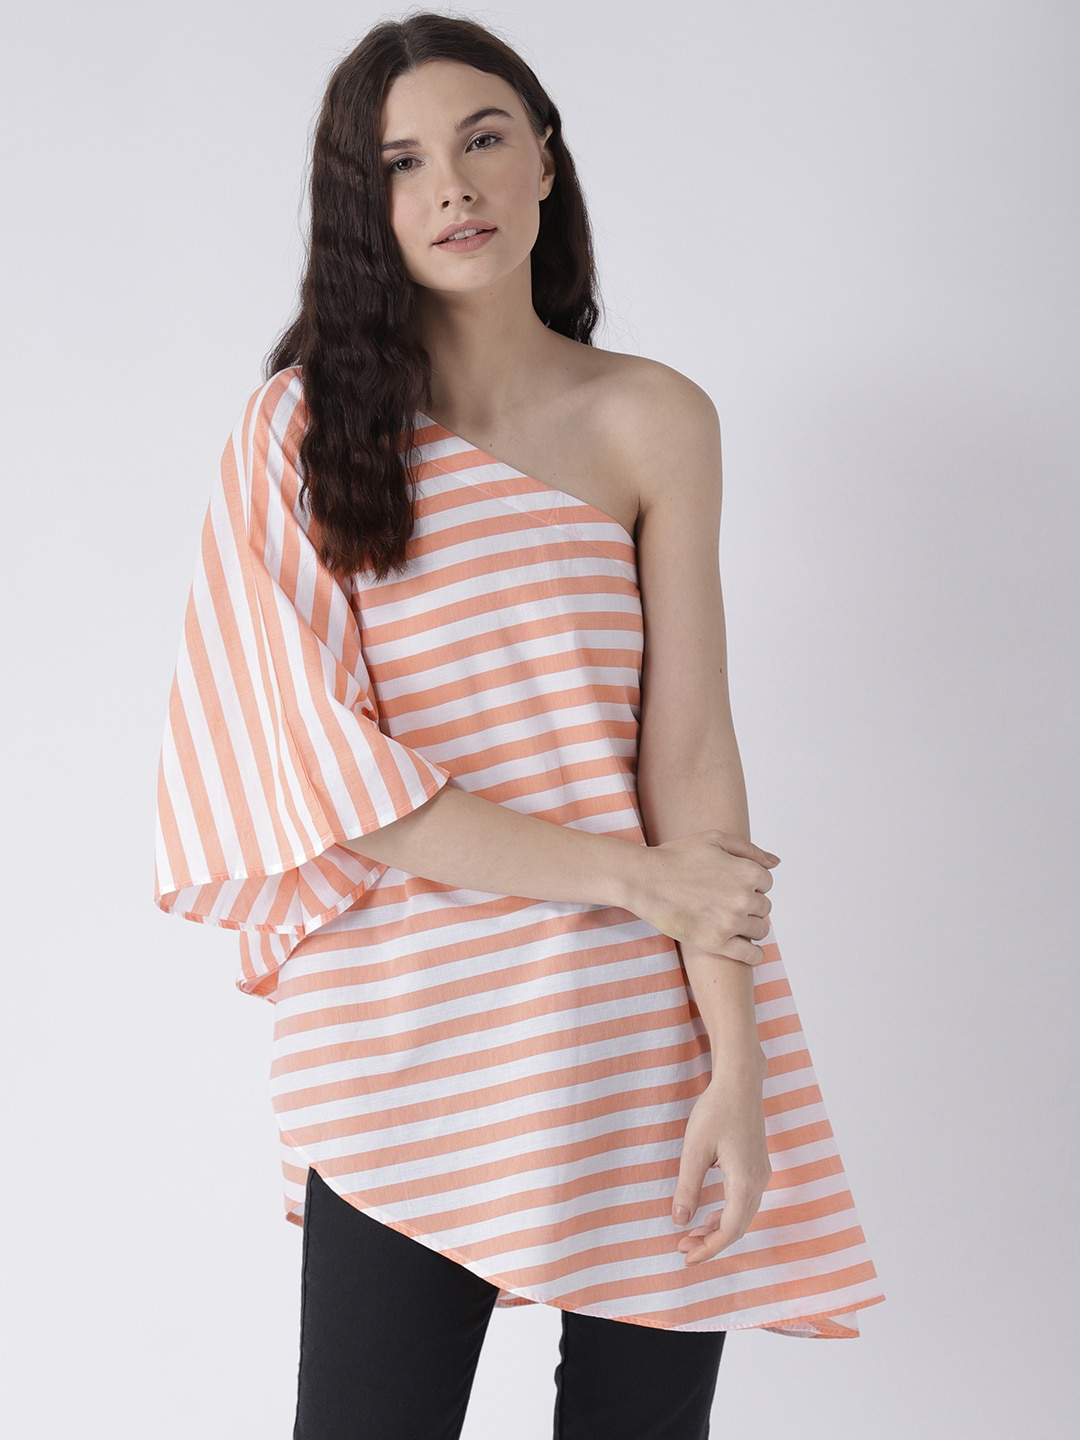 21eaeddb5f7b7 One Shoulder Tops - Buy One Shoulder Tops Online in India